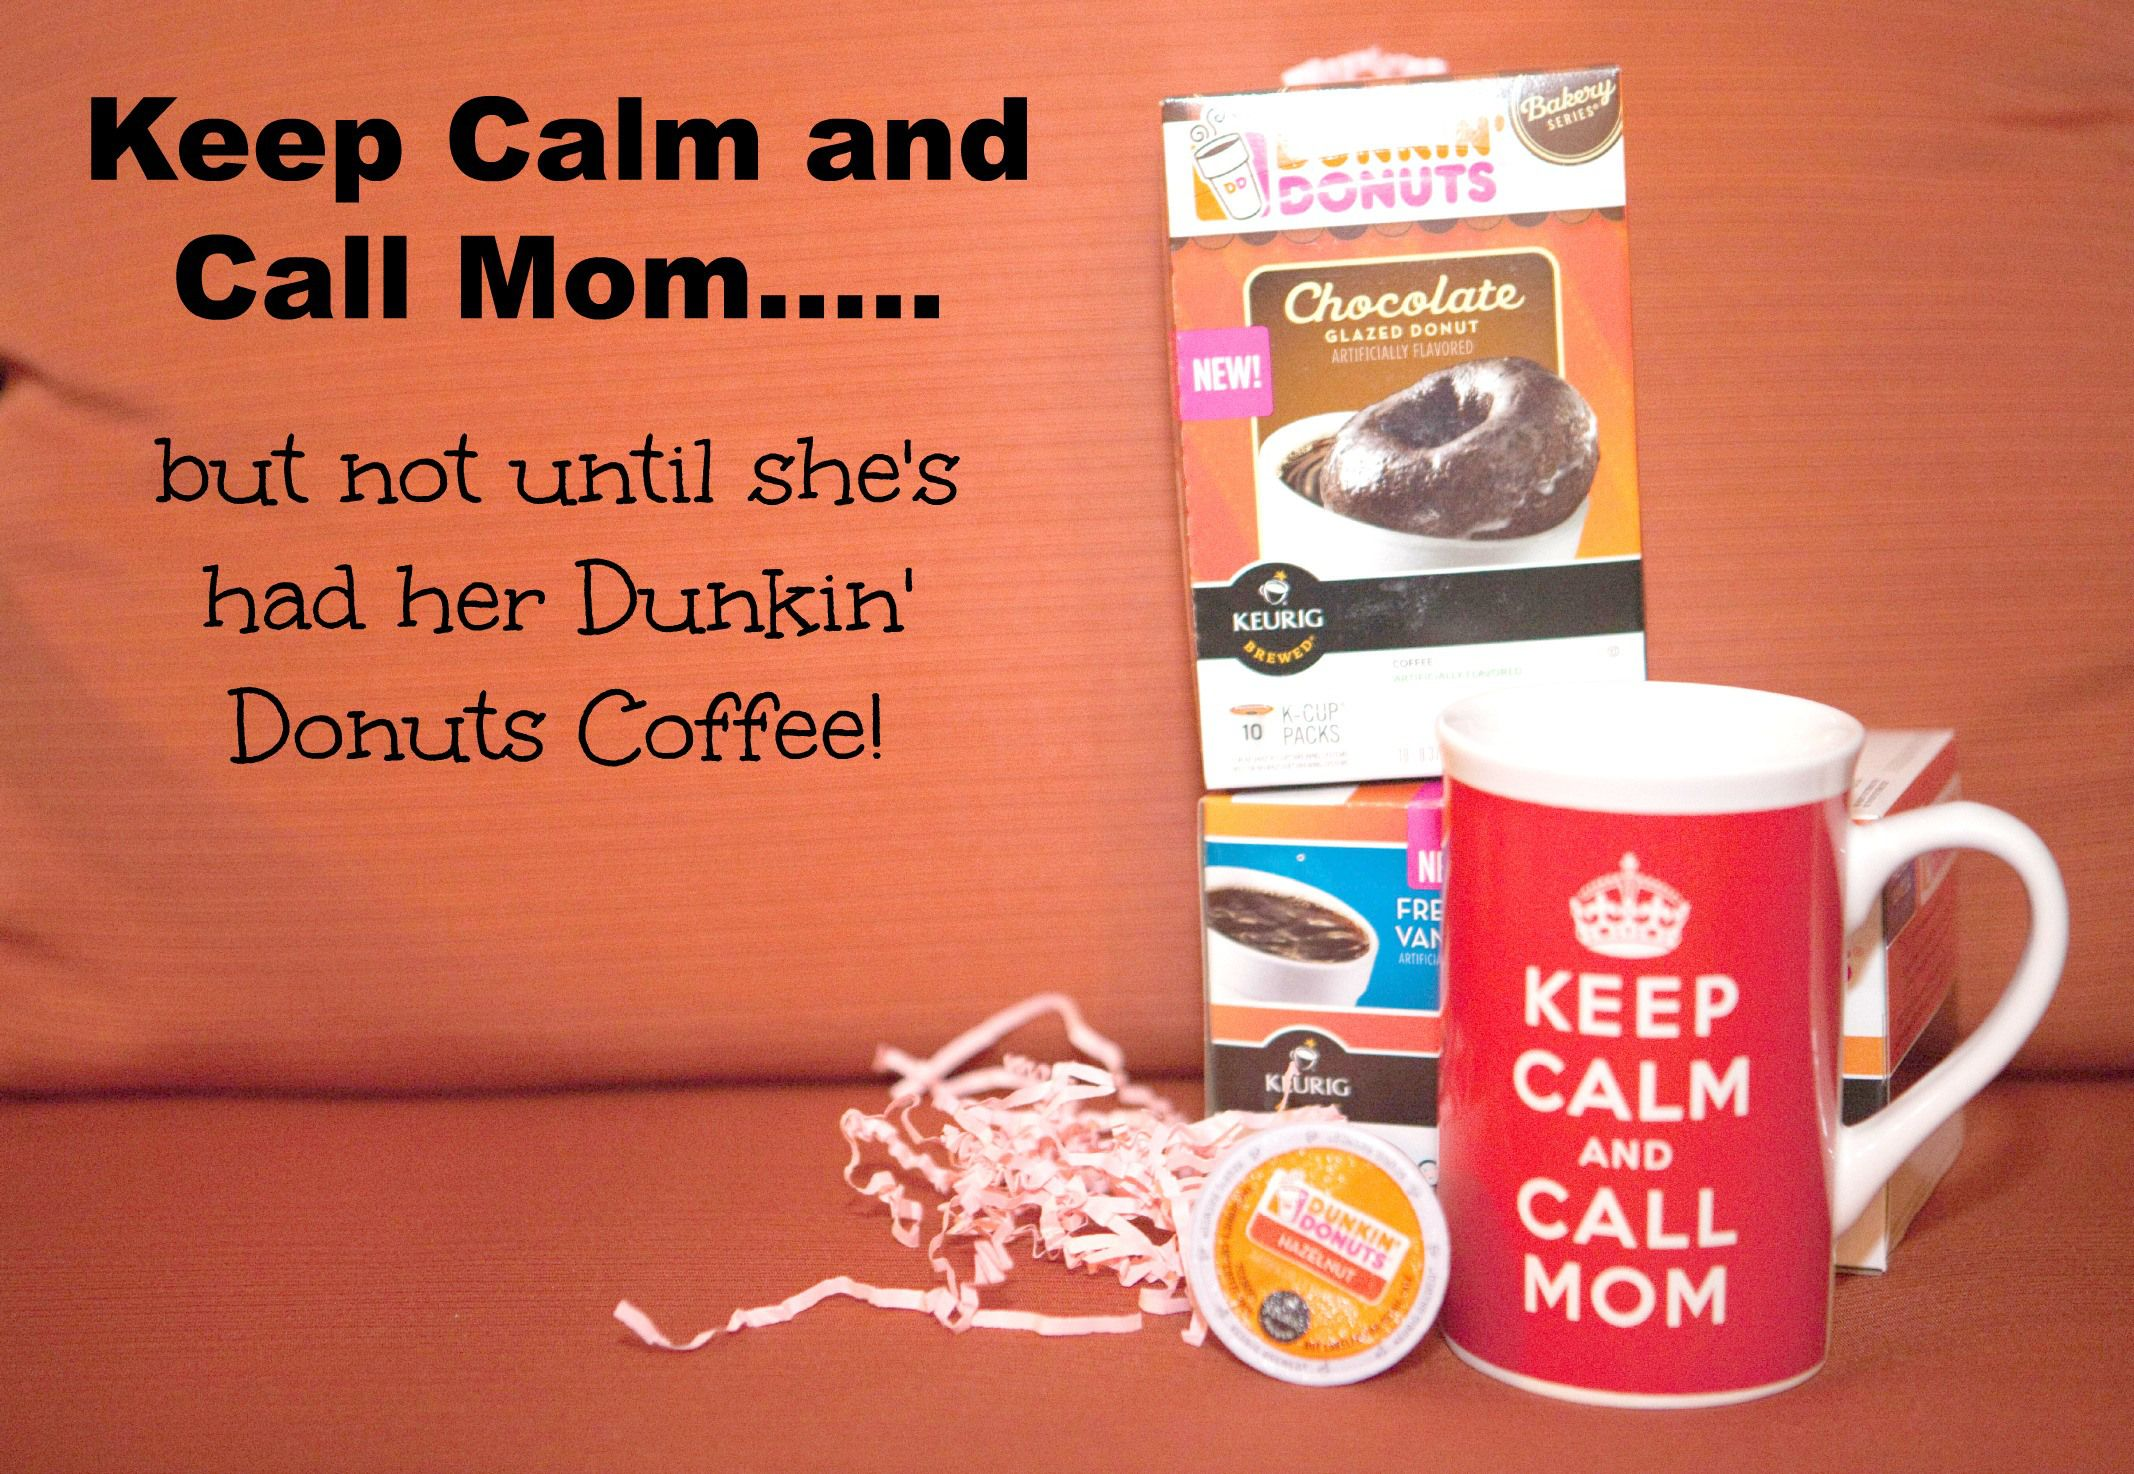 Did you know that you can get Dunkin' Donuts® Coffee In